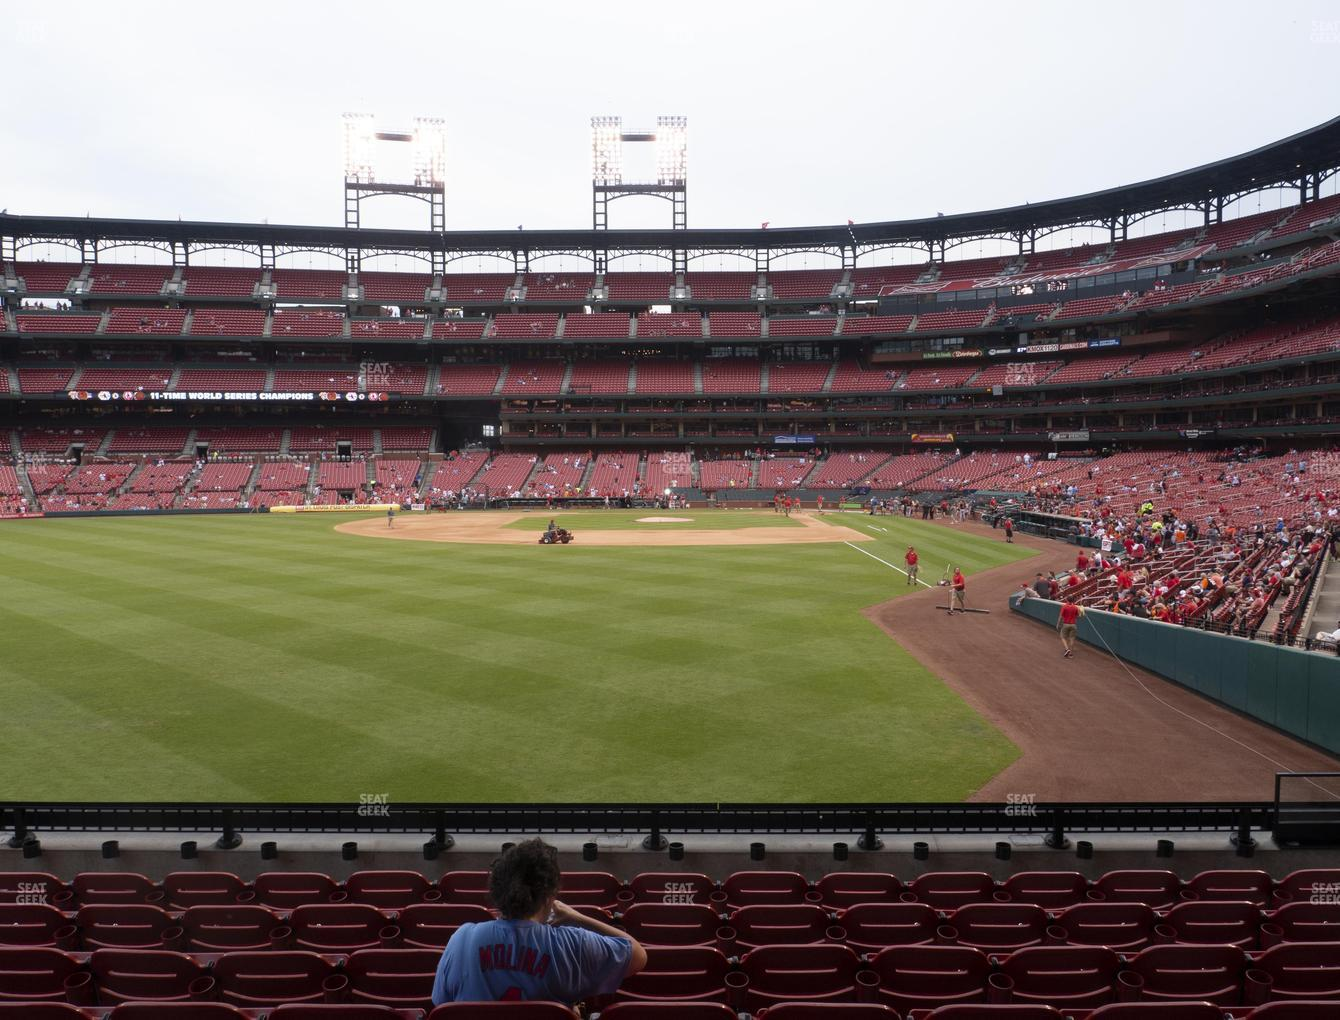 St. Louis Cardinals at Busch Stadium Lower Left Field Box 171 View